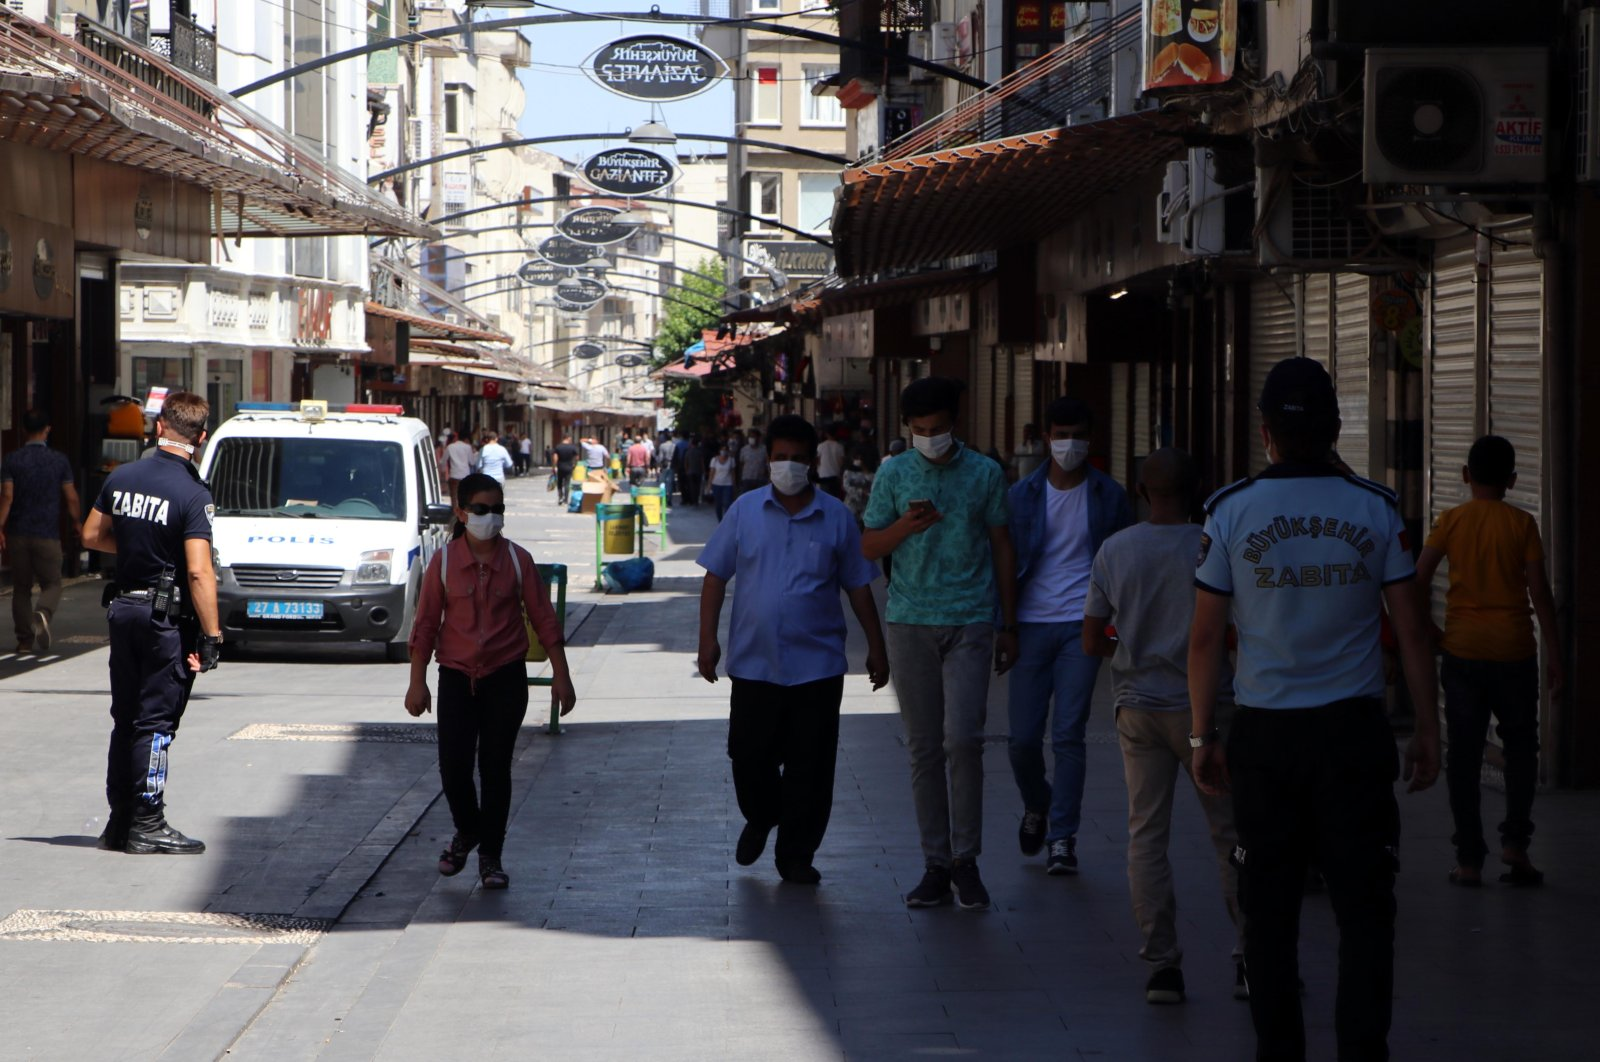 People wearing protective masks walk on a street in Gaziantep, southern Turkey, Aug. 2, 2020. (DHA Photo)